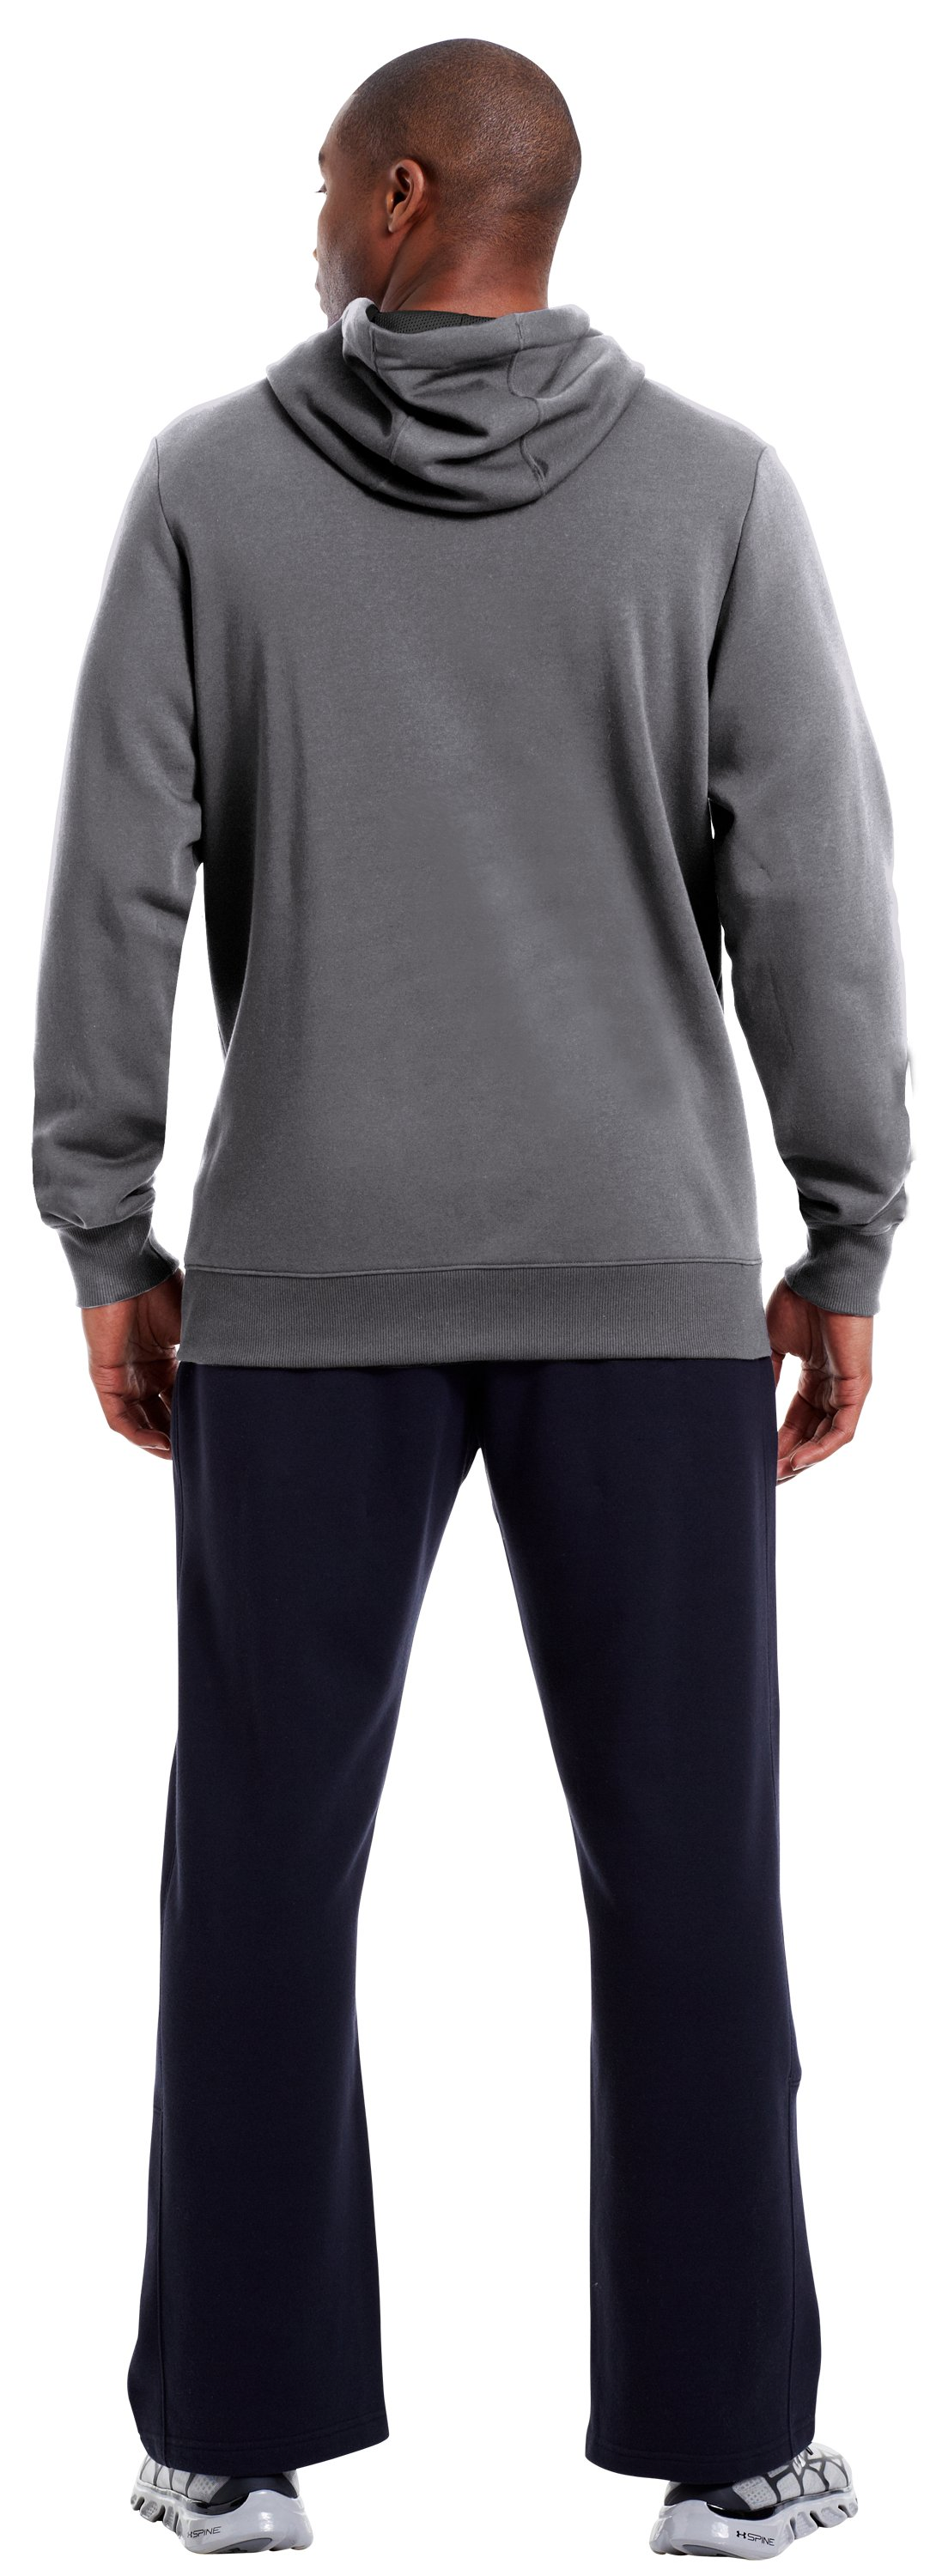 Men's Charged Cotton® Storm Battle Hoodie, Graphite, Back